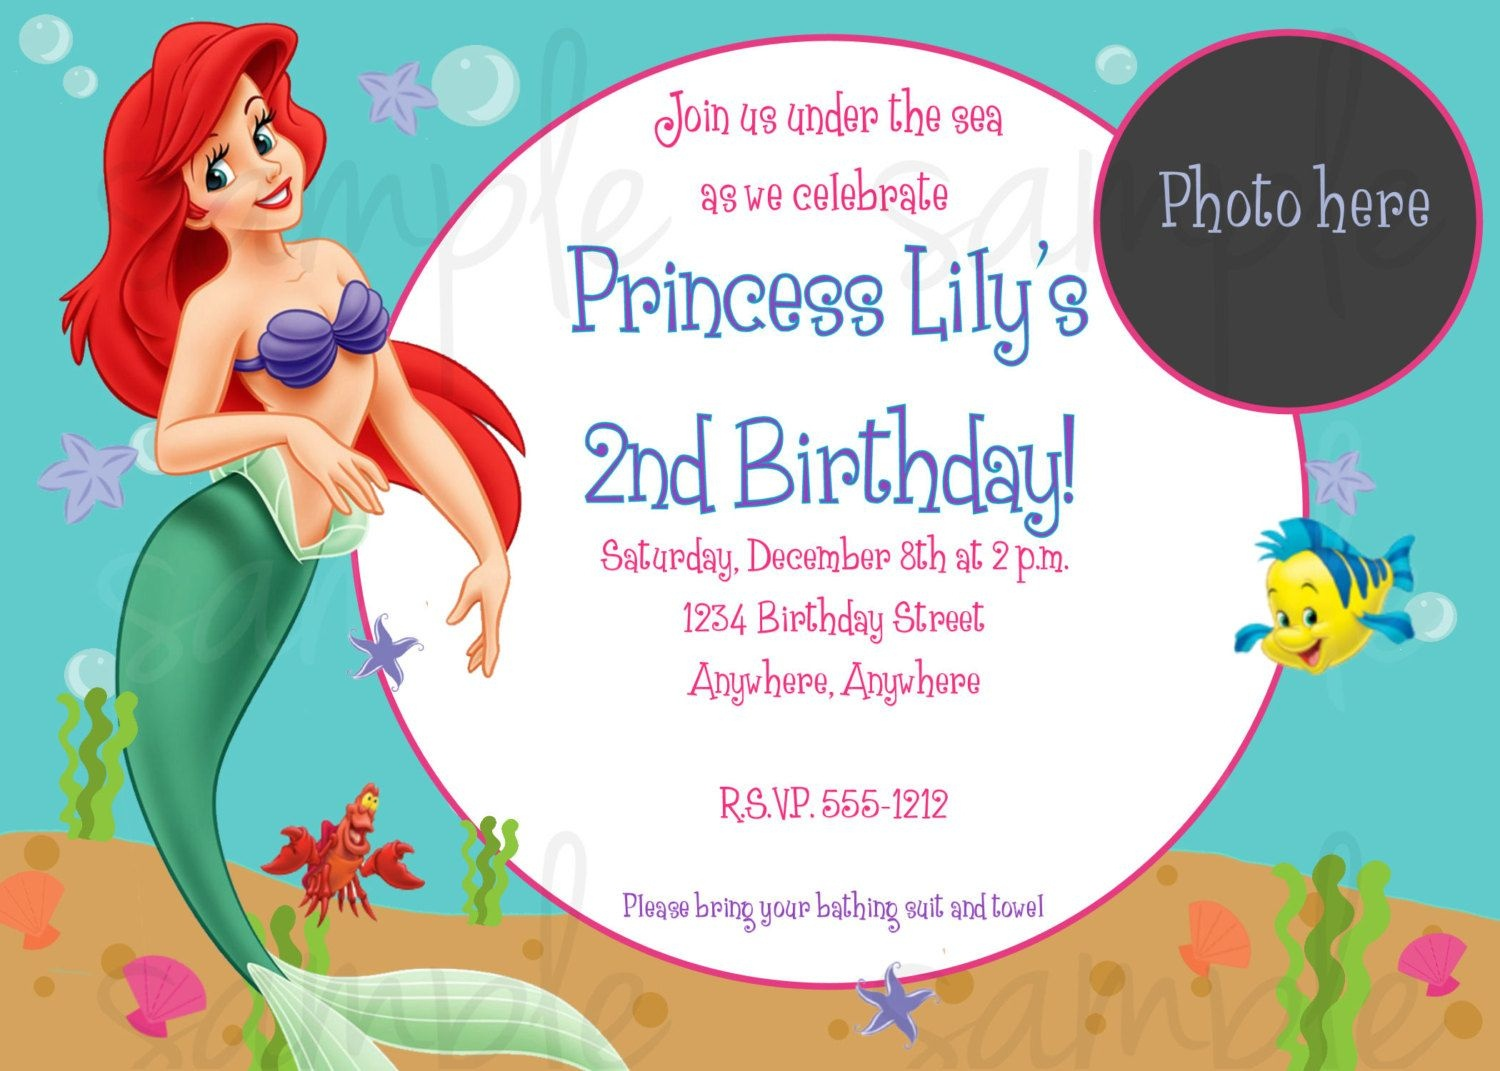 Nice Free Printable Birthday Invitations - Ariel Mermaid | Bagvania - Free Little Mermaid Printable Invitations